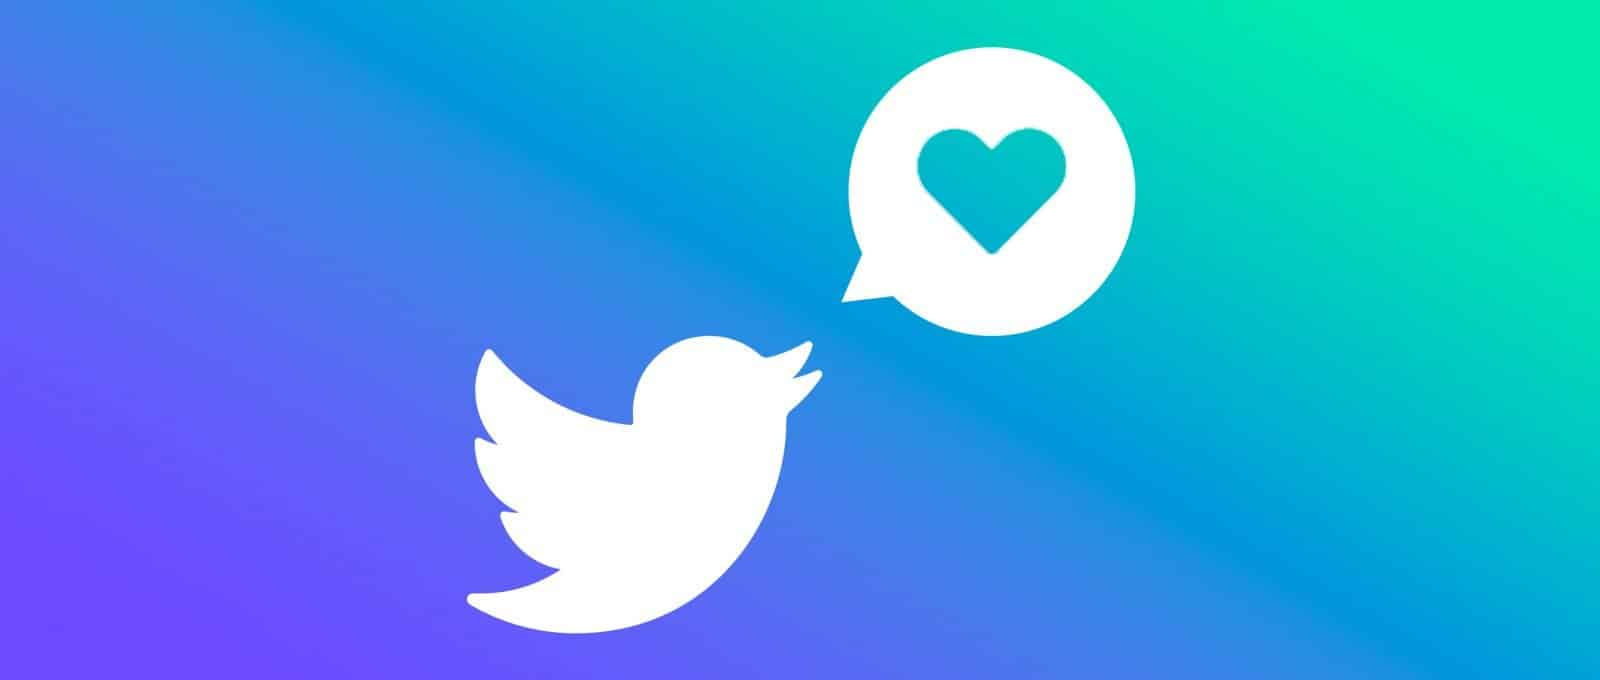 5 Ways to Make Money from Your Twitter Account in 2020